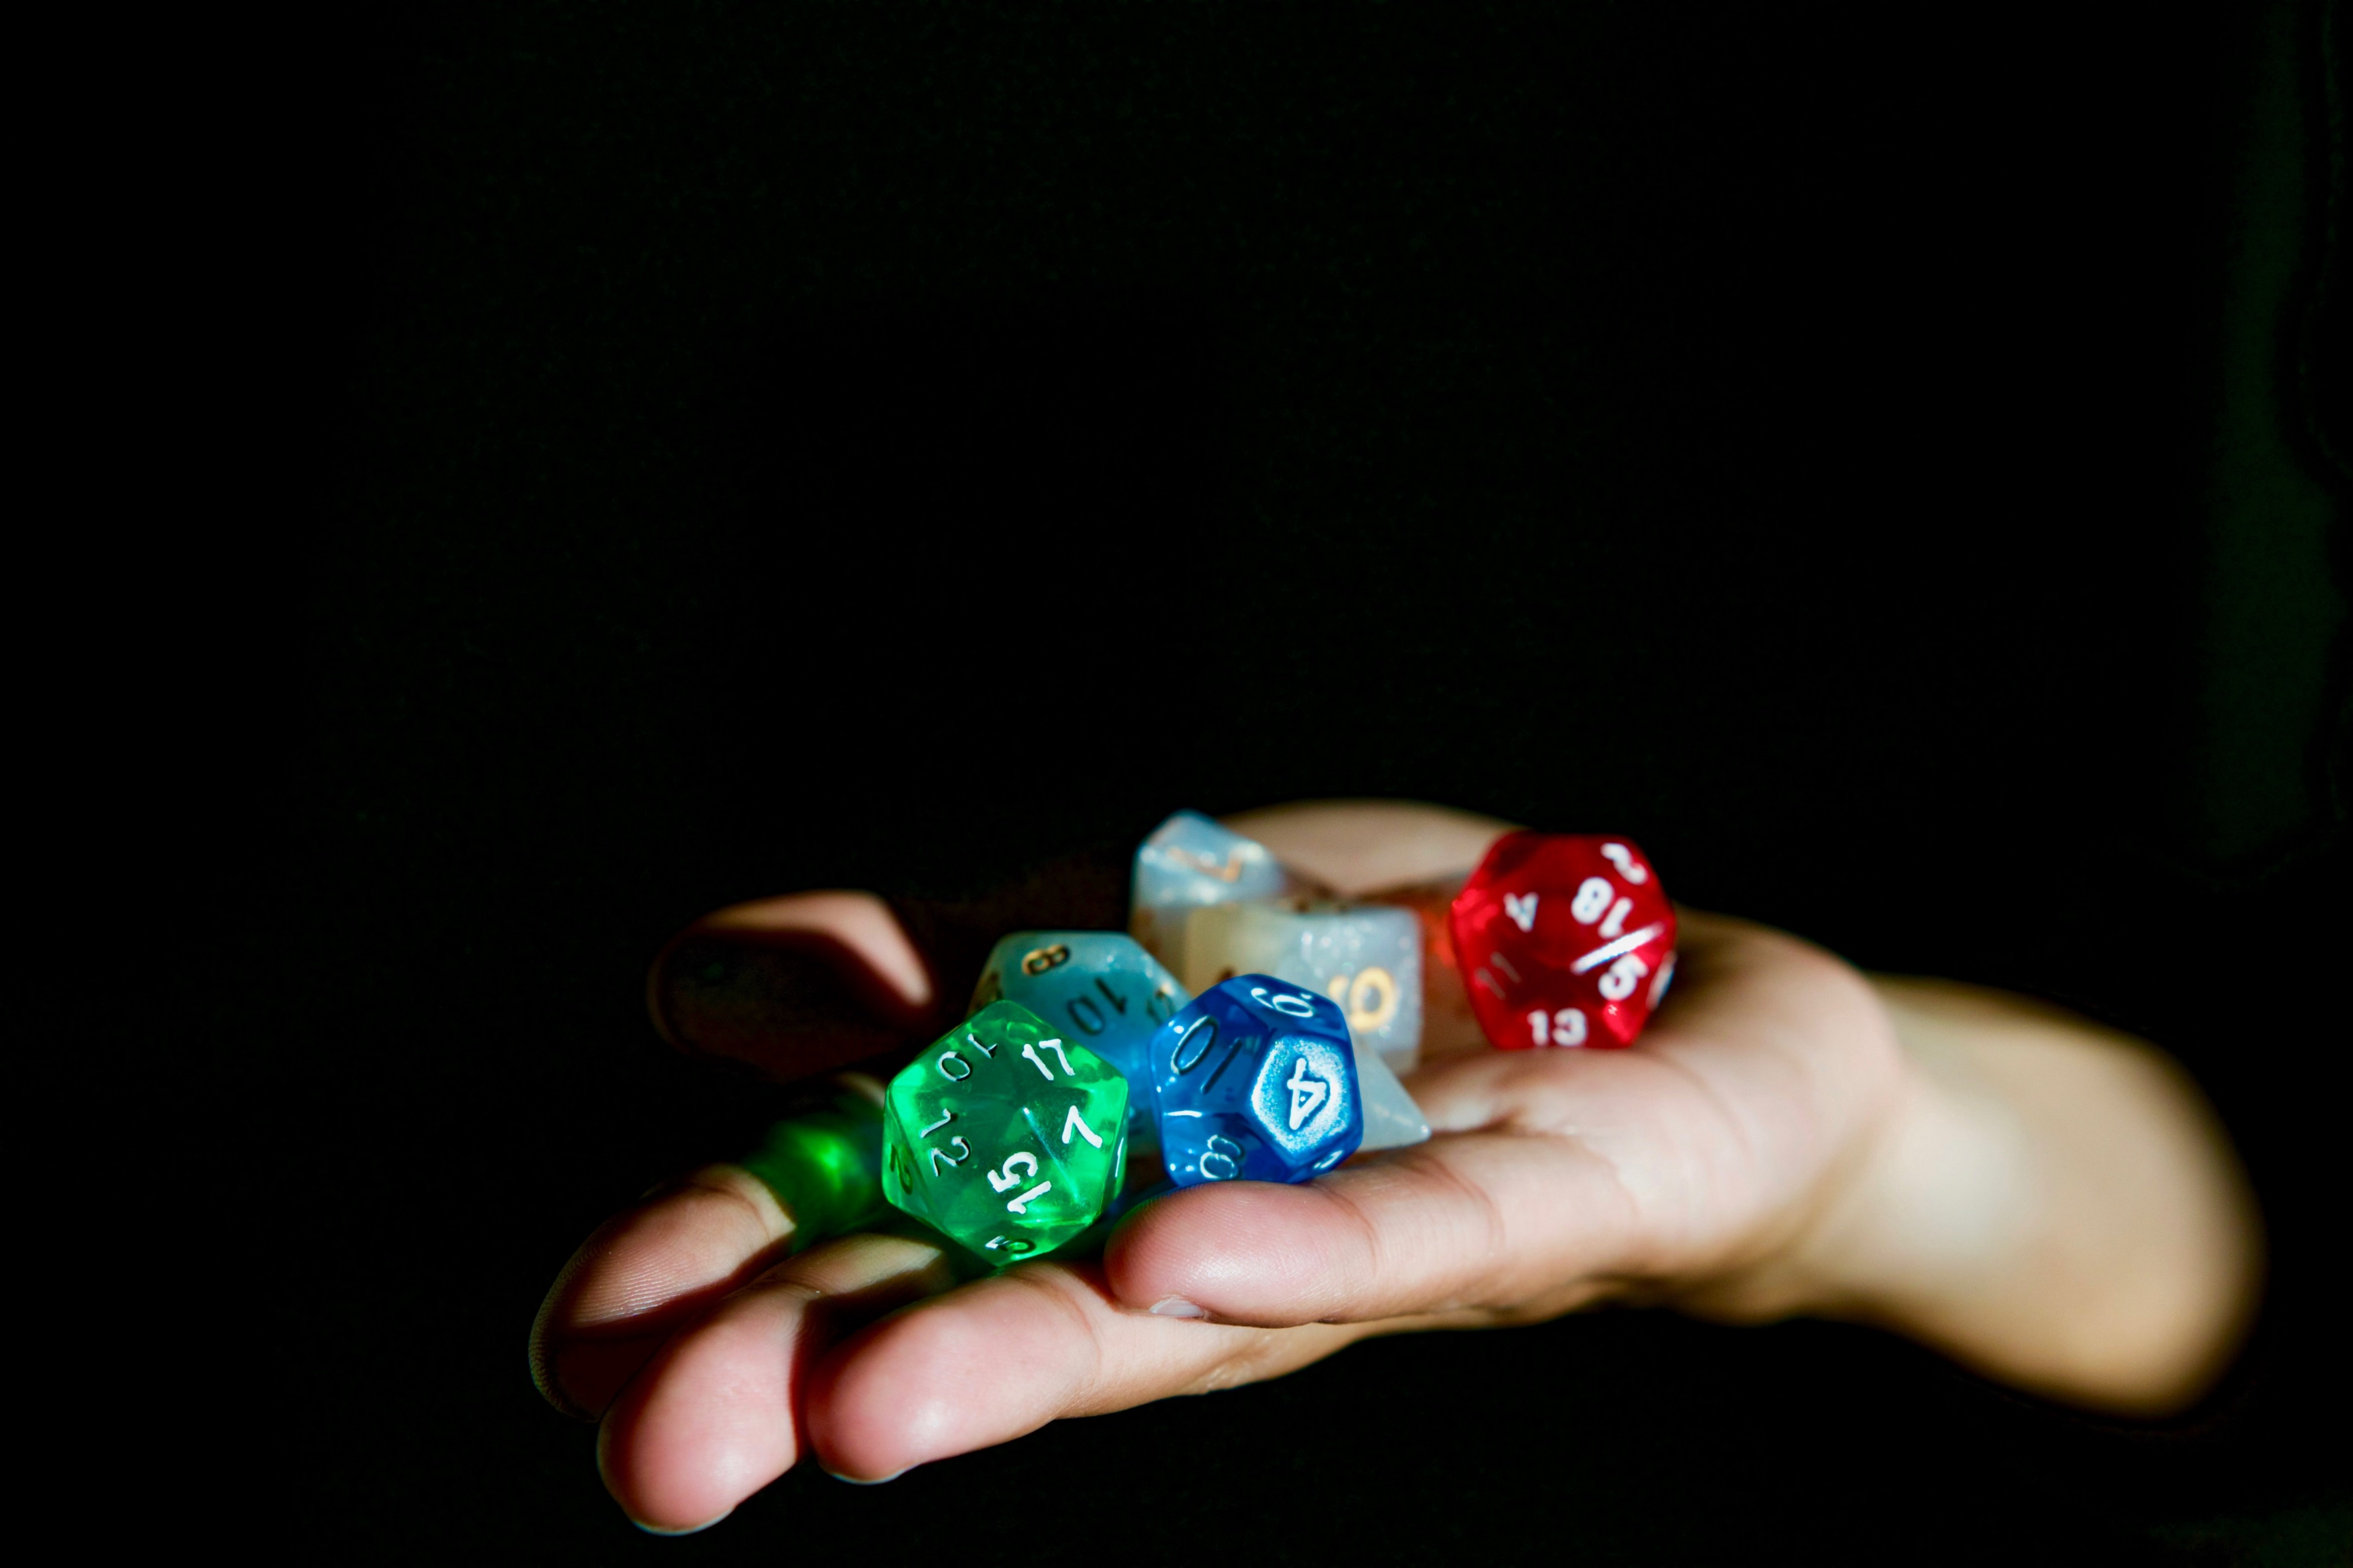 Hand holding funny dice with lots of side